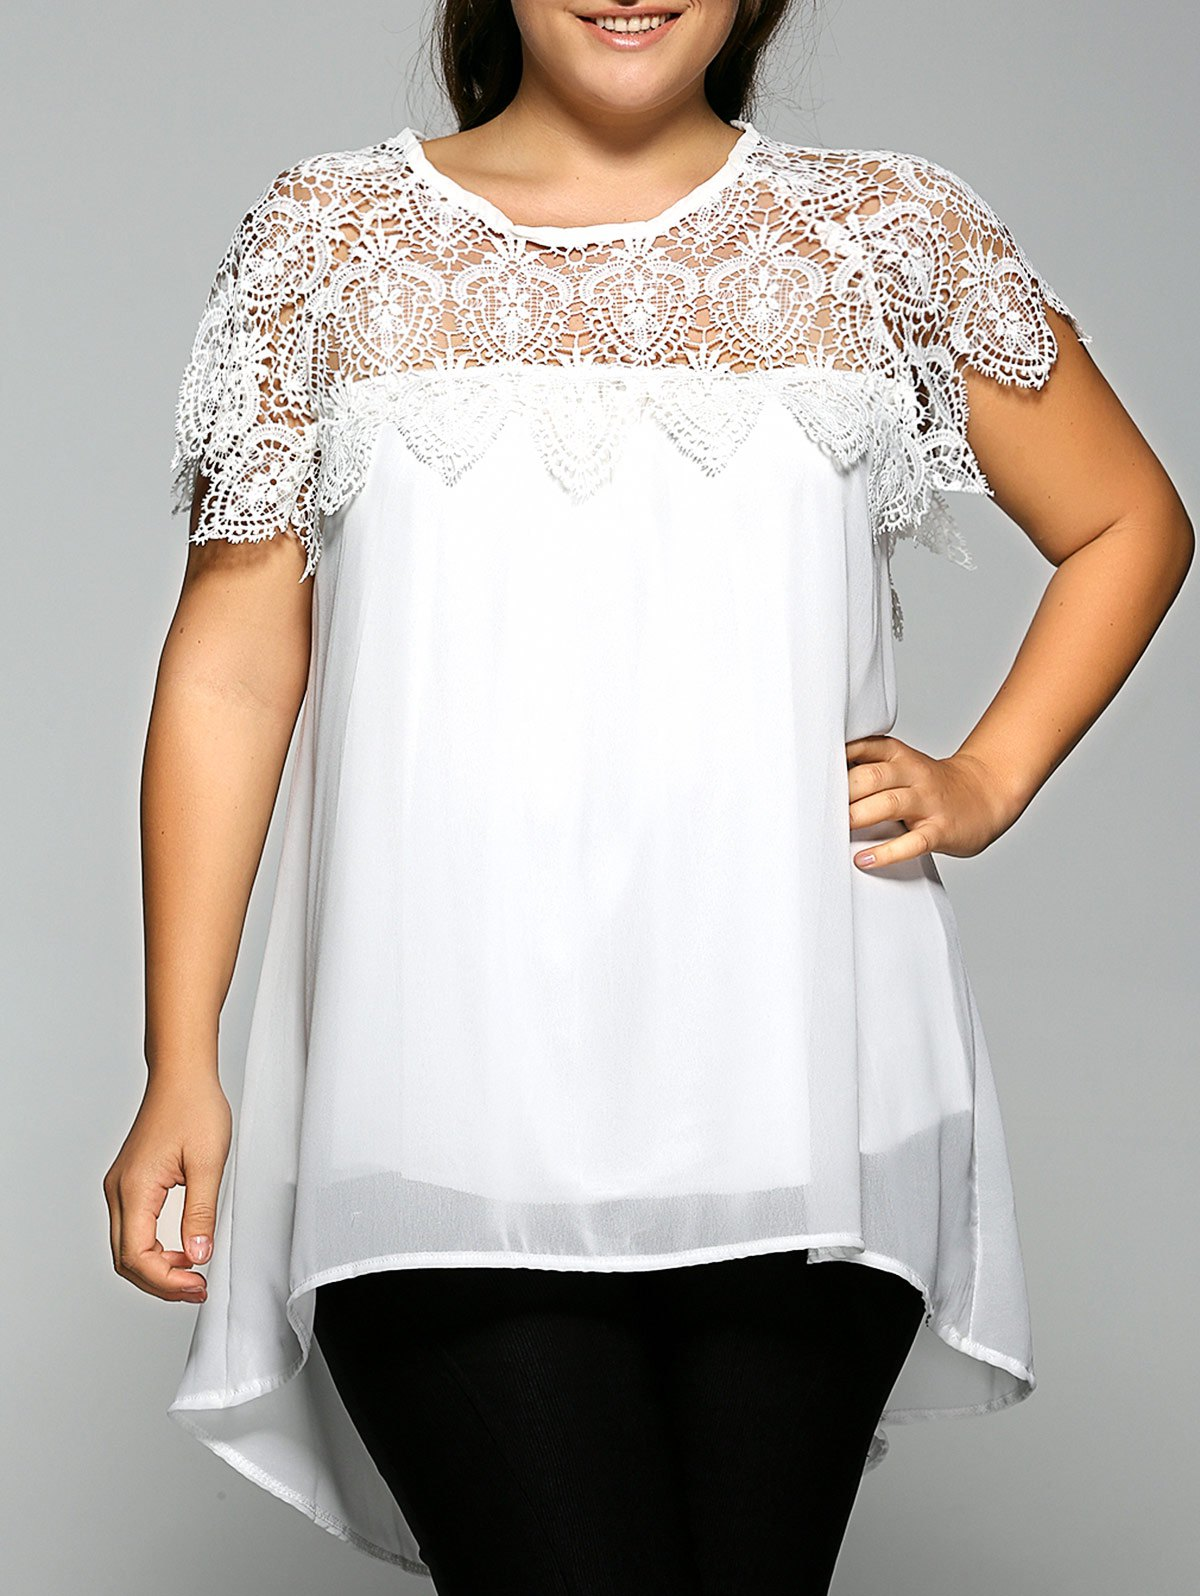 Lace Spliced Plus Size Chiffon High Low BlouseWOMEN<br><br>Size: 4XL; Color: WHITE; Material: Cotton Blends; Fabric Type: Chiffon; Shirt Length: Regular; Sleeve Length: Short; Collar: Round Neck; Style: Casual; Season: Fall,Summer; Embellishment: Lace; Pattern Type: Floral; Weight: 0.234kg; Package Contents: 1 x Blouse;